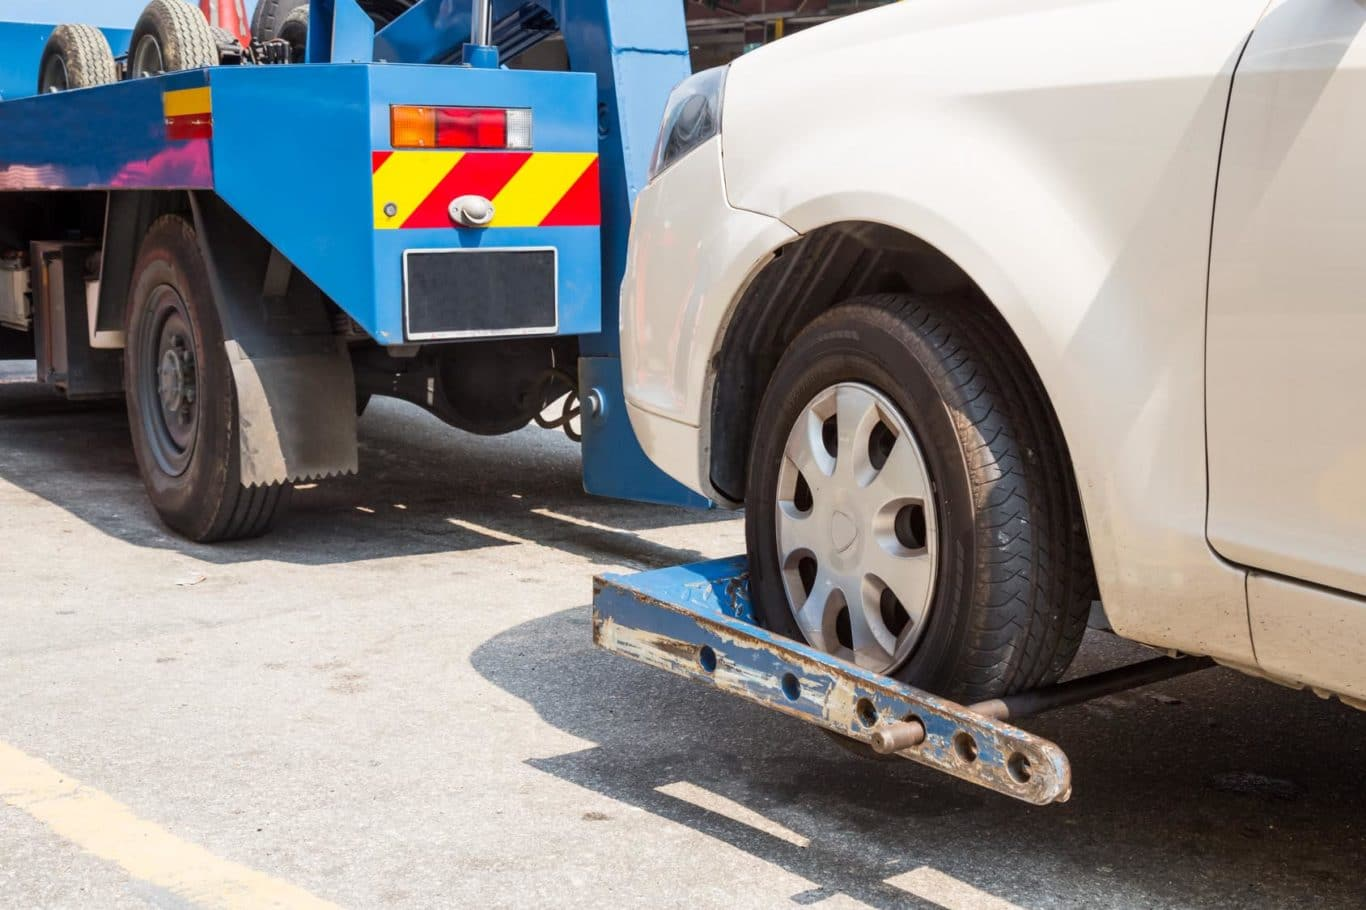 Staplestown expert Car Recovery services